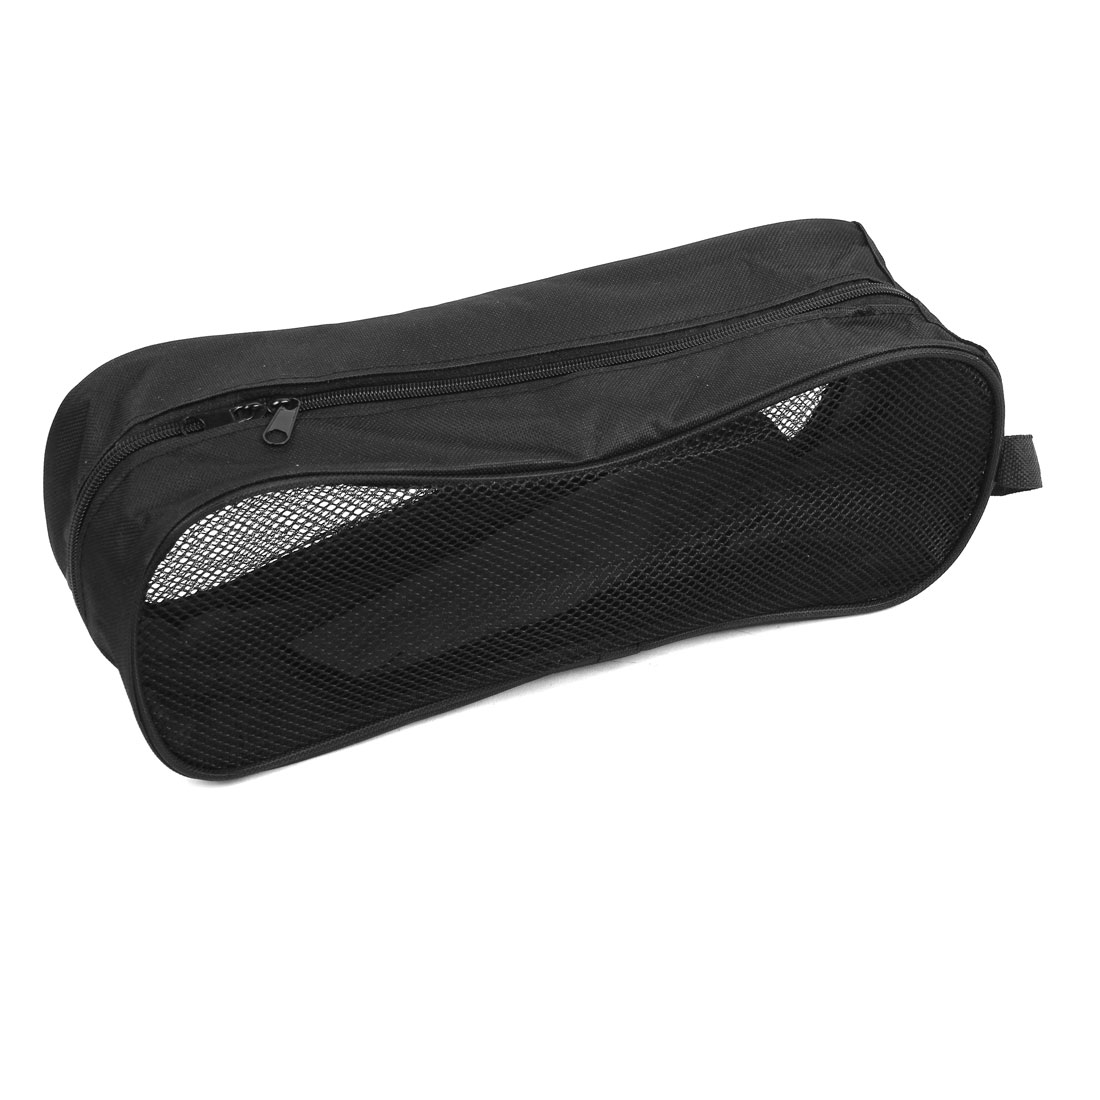 Trip Travel Storage Shoes Bags Outdoor Sport Shoes Organizer Case Black